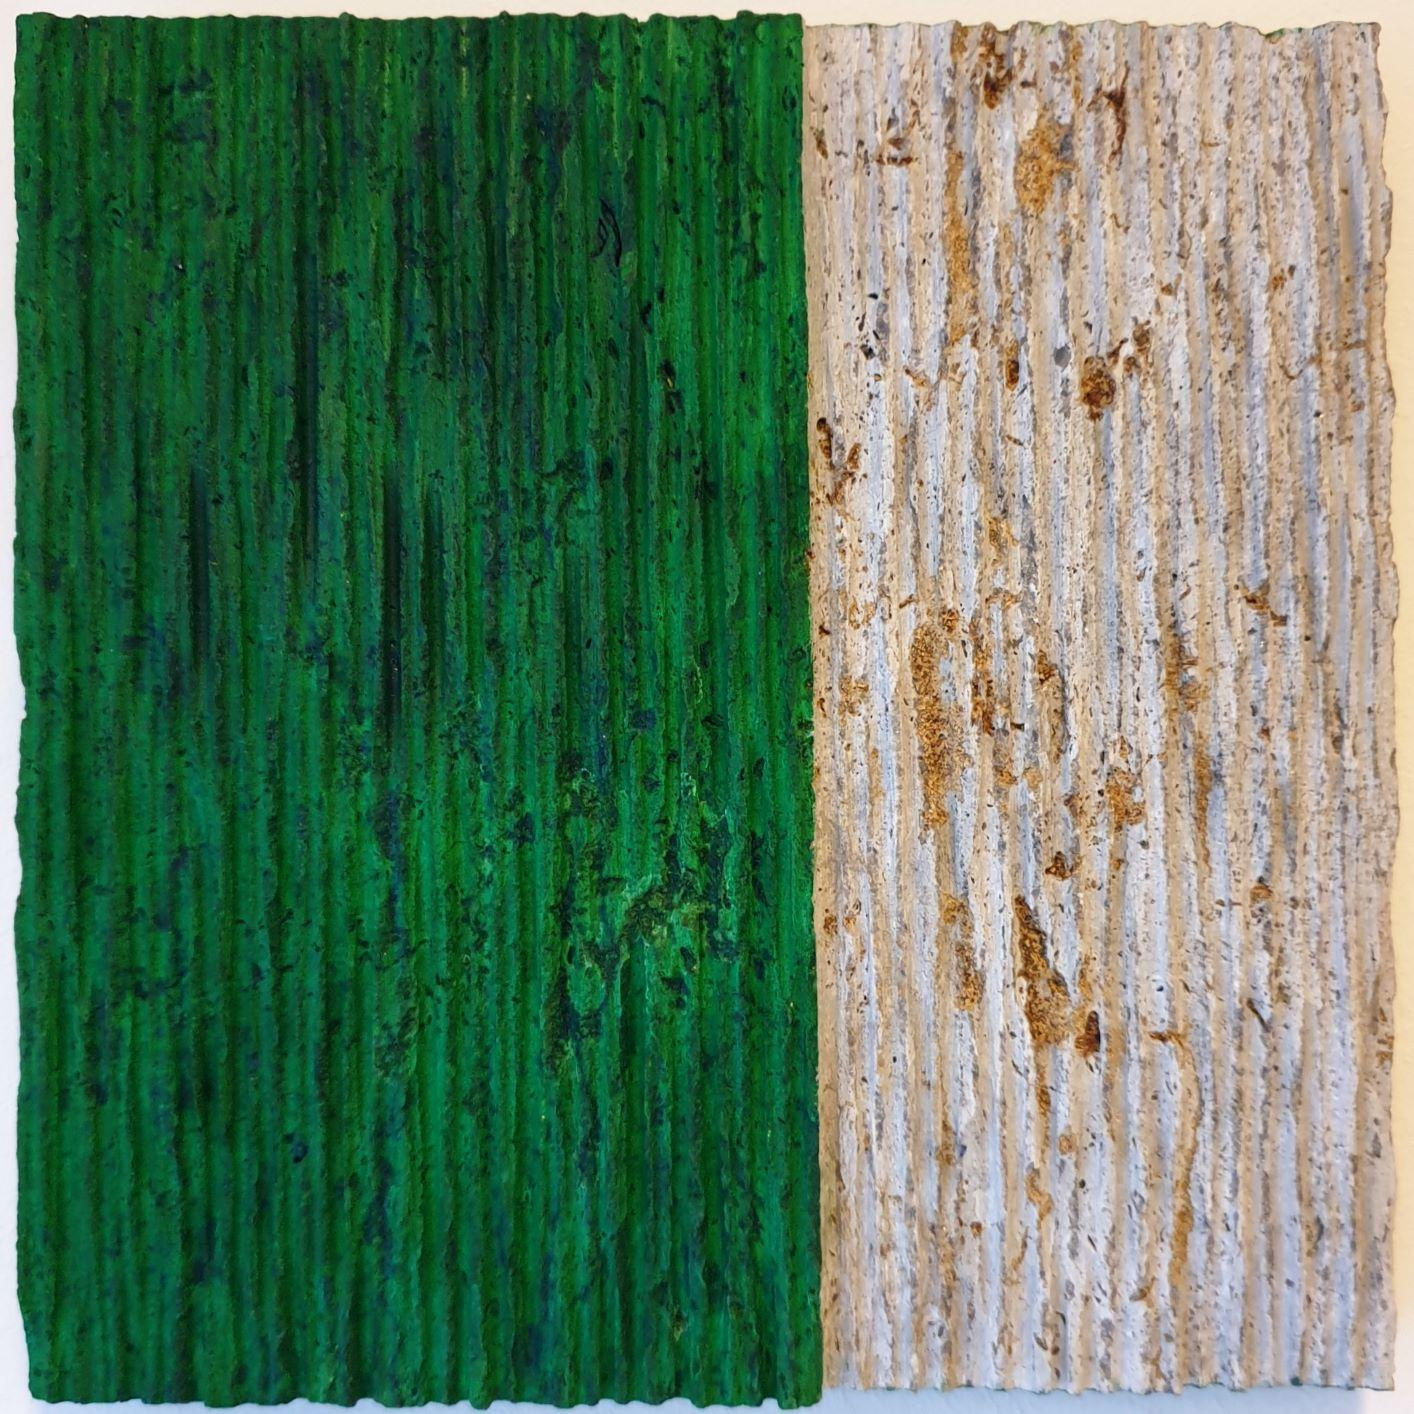 o.T. (Gr22VV) - green contemporary modern wall sculpture painting relief